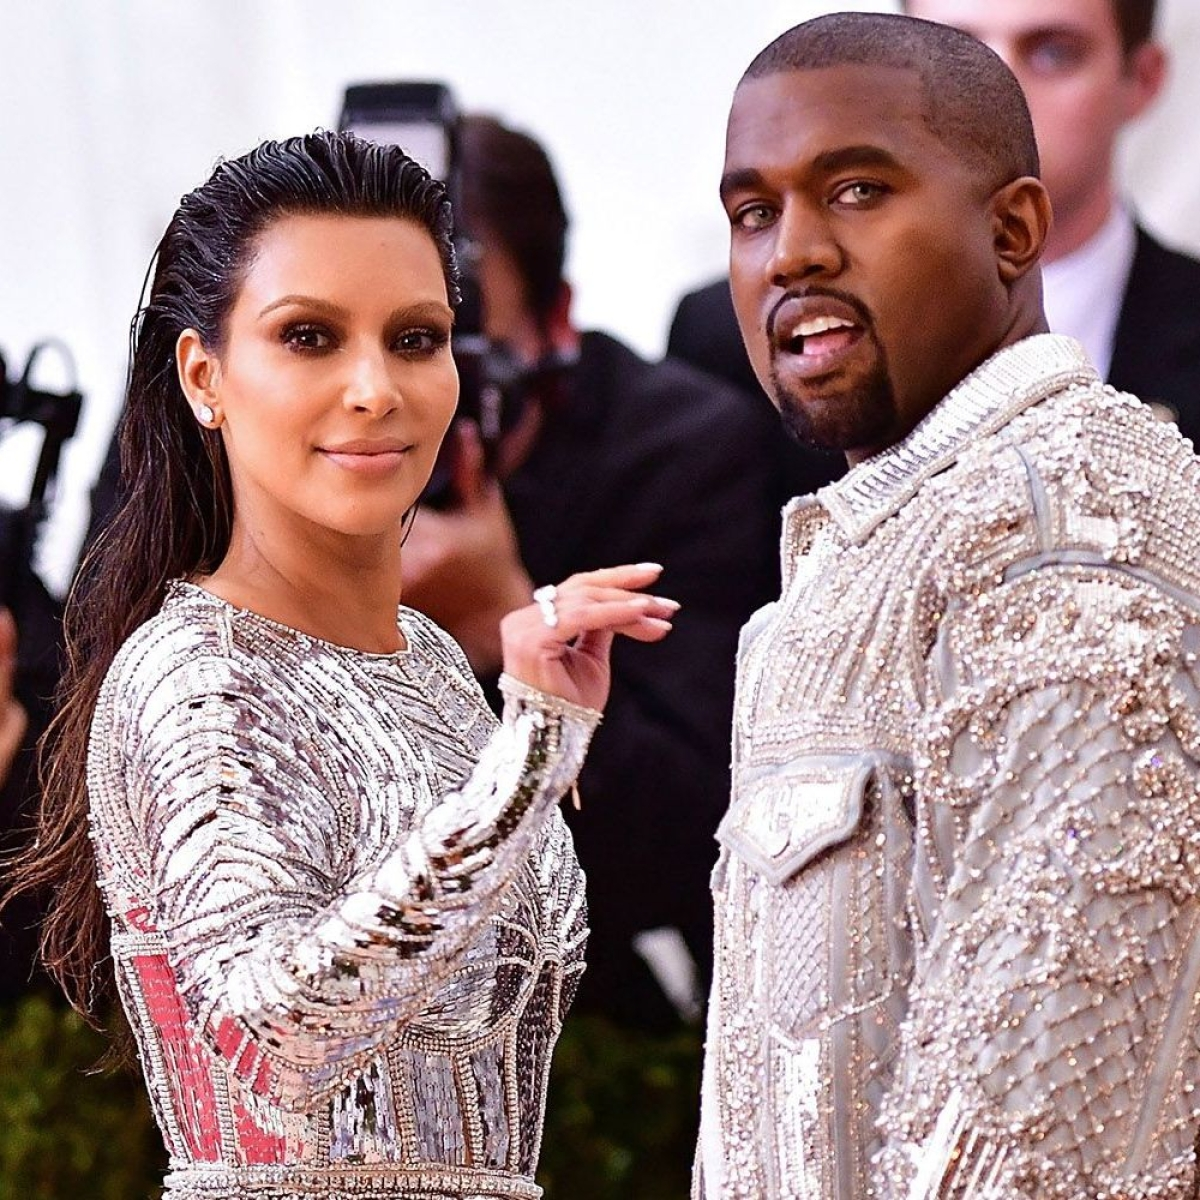 Kanye West thinks 2020 presidential run led to divorce with Kim Kardashian